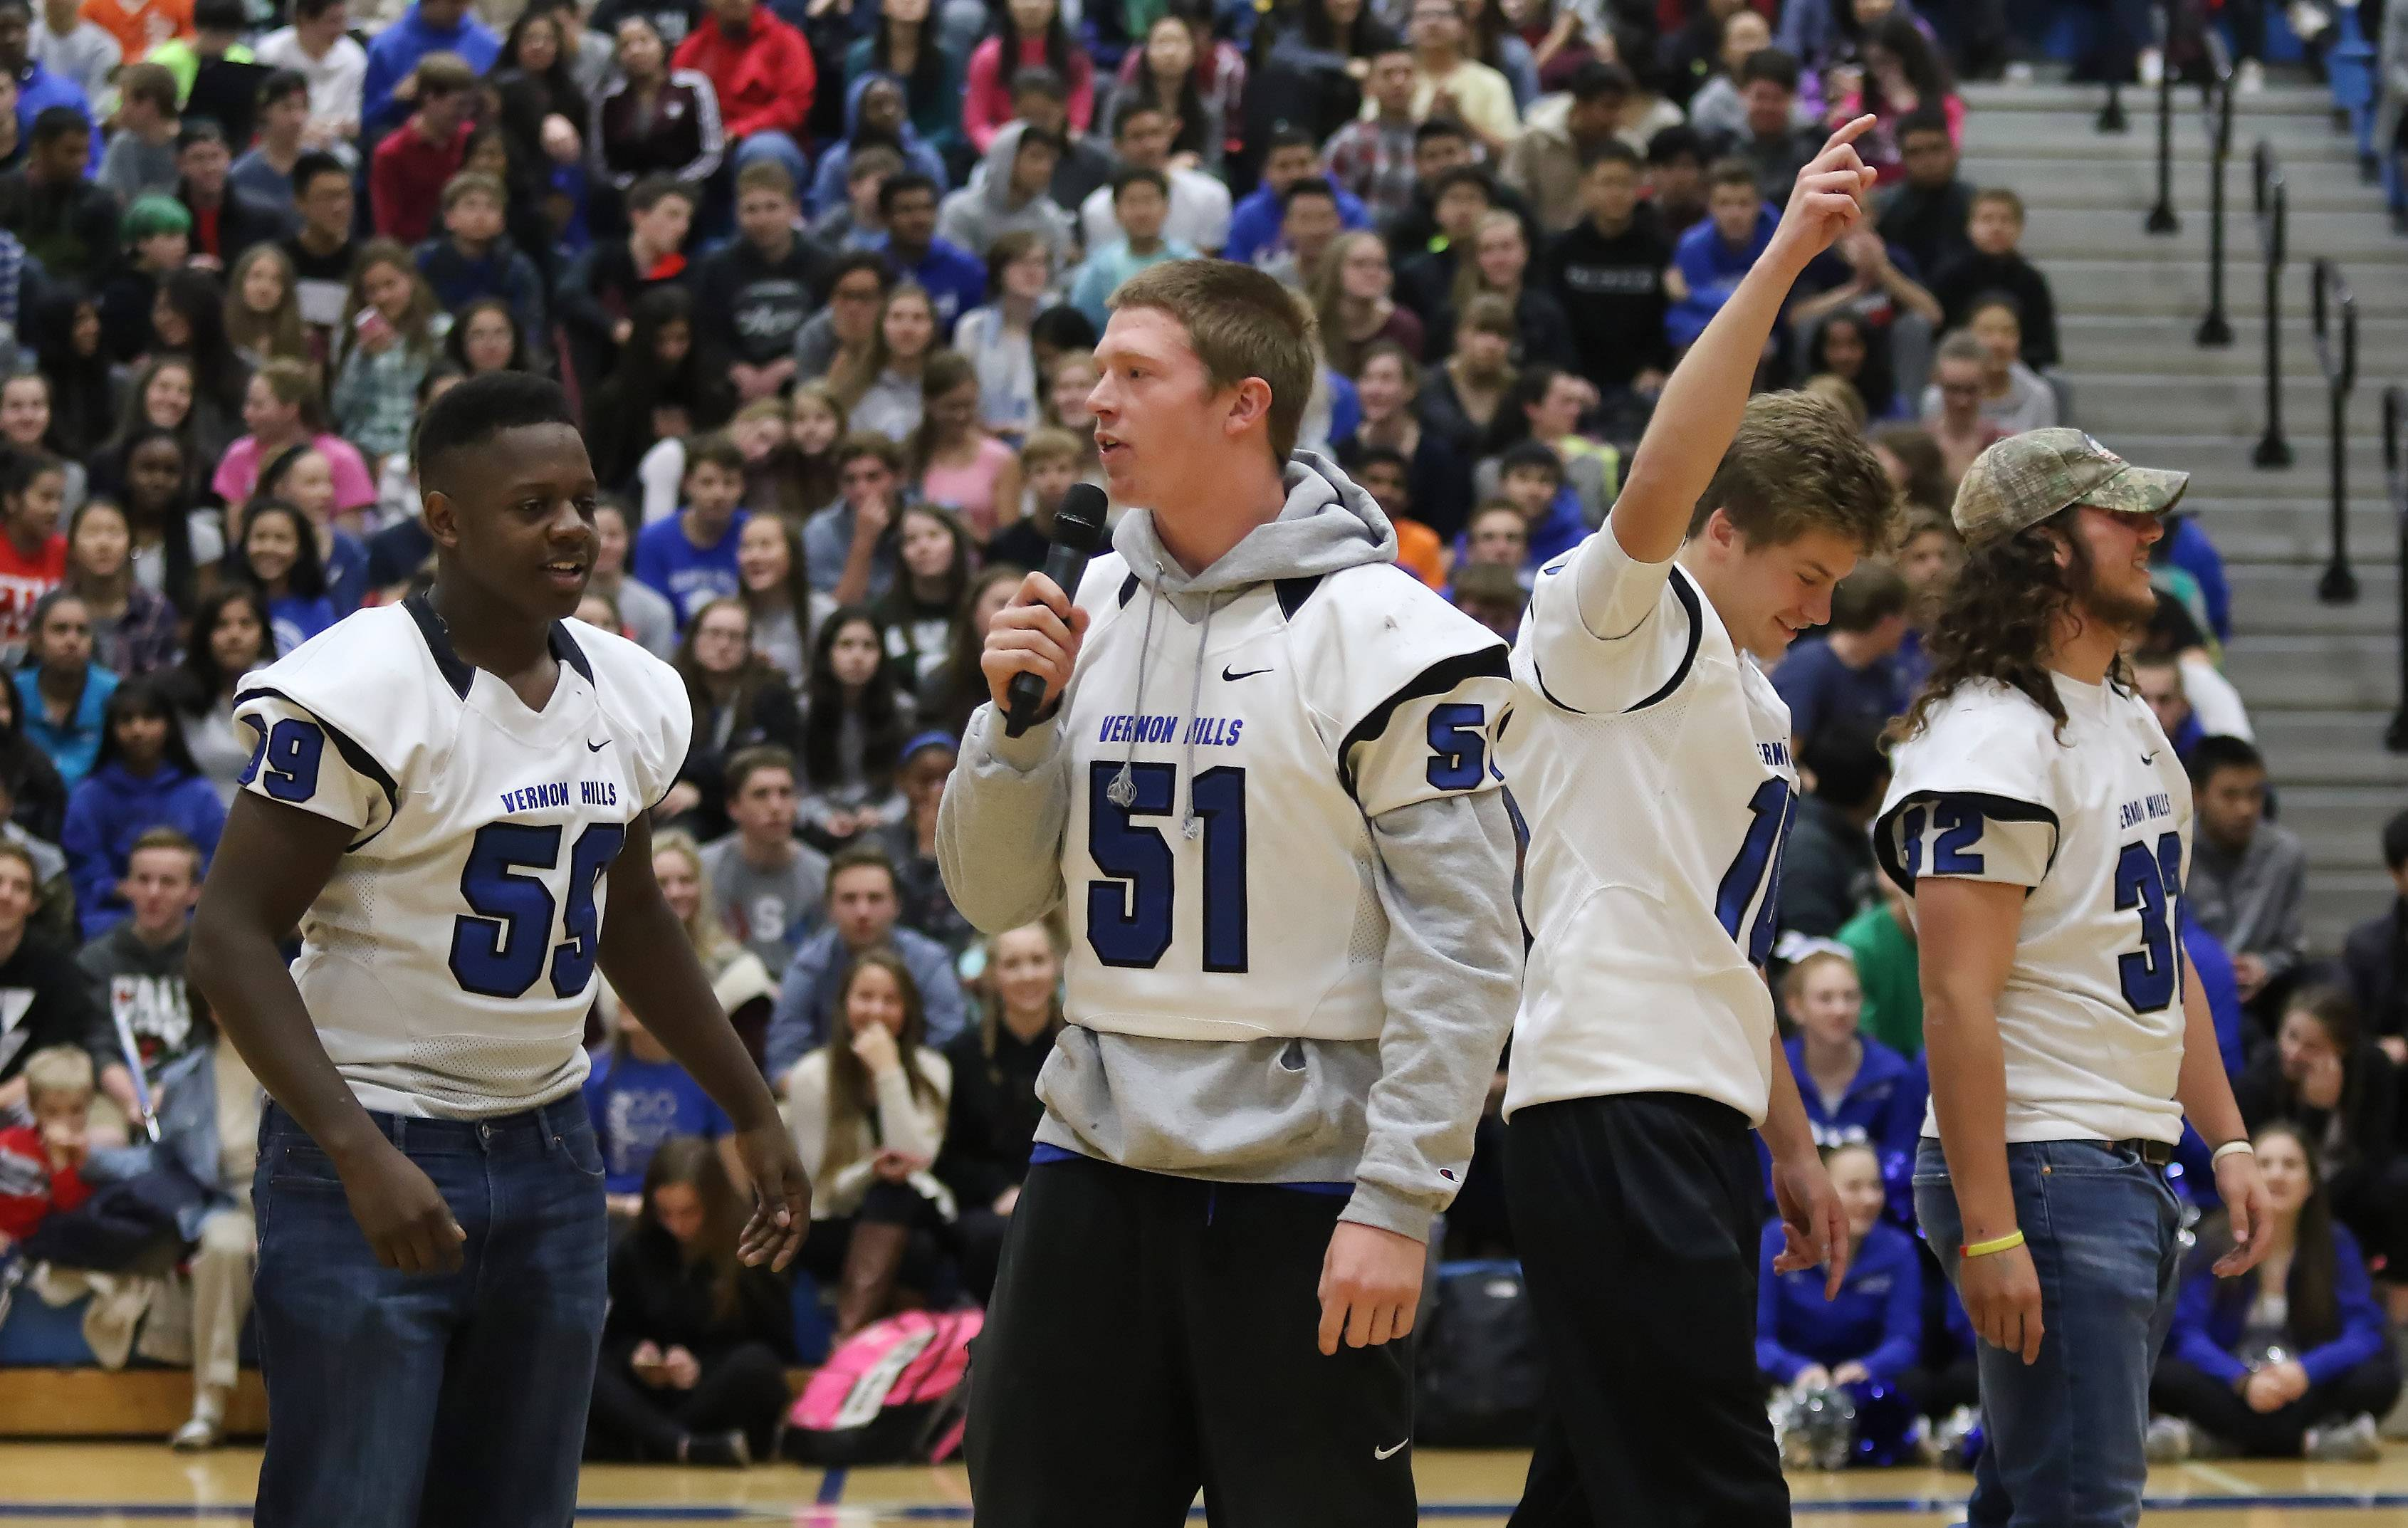 Vernon Hills Cougars to make history Saturday in state title game